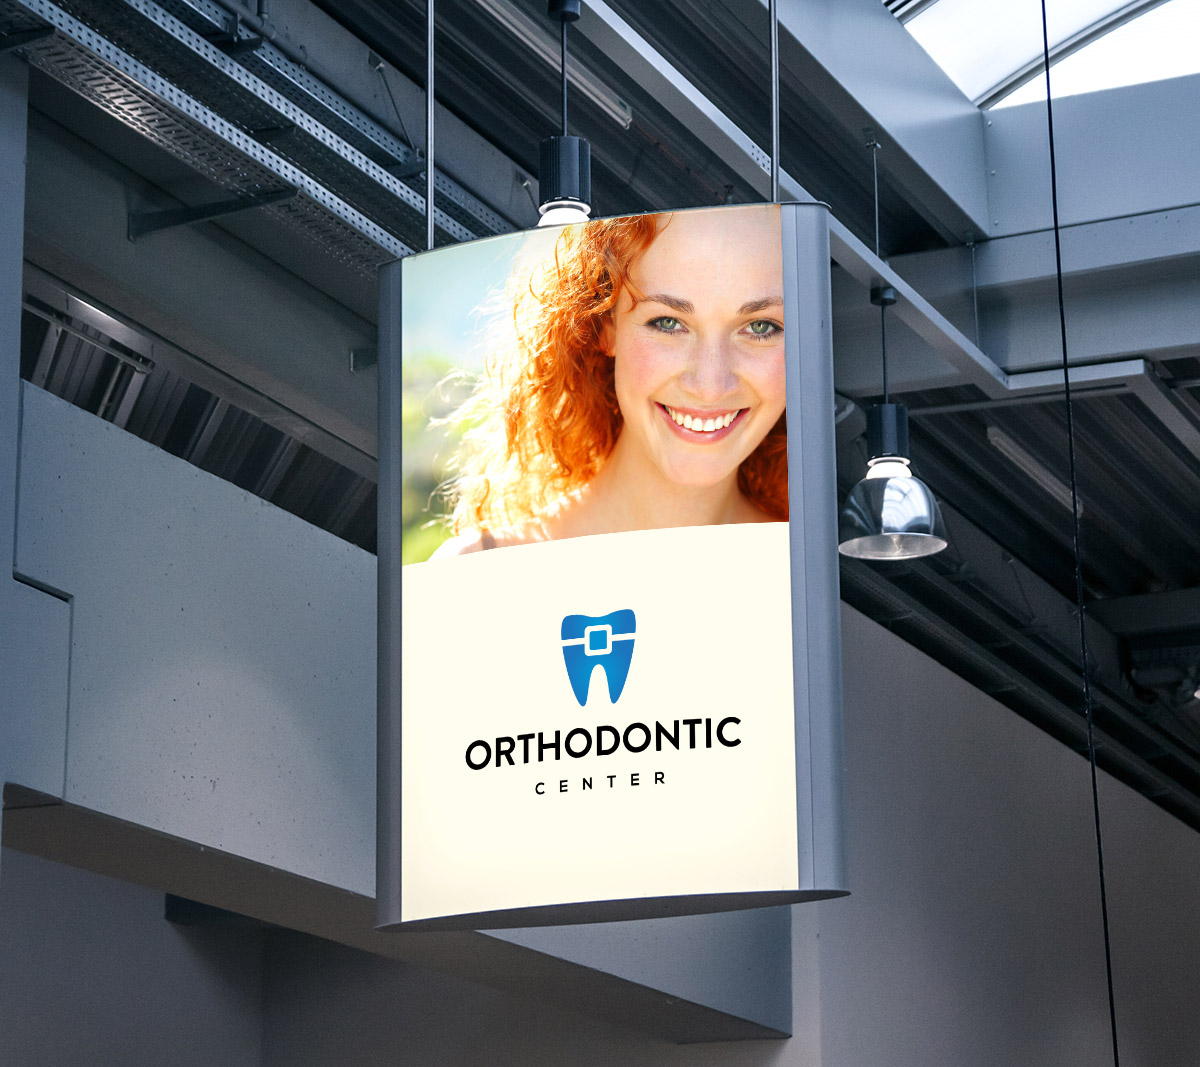 orthodontic-center-04